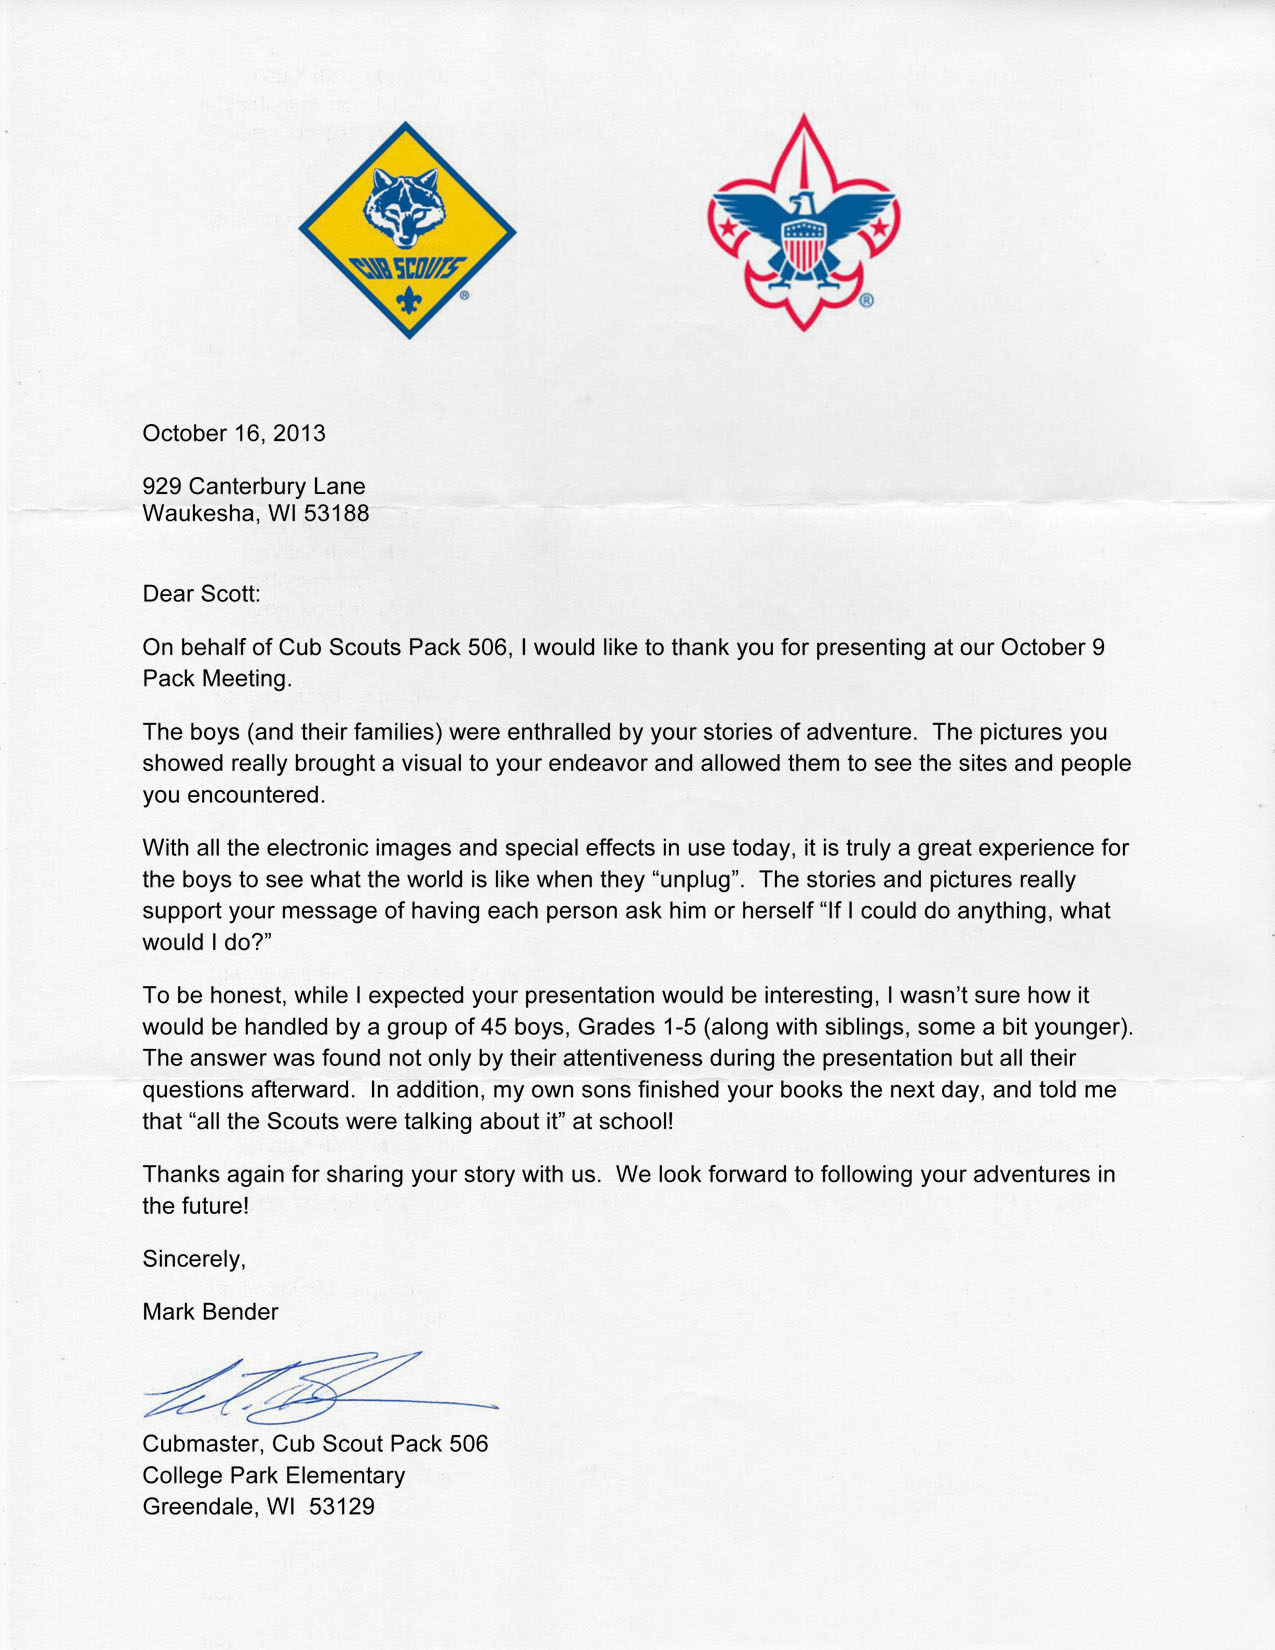 letter-of-commendation-cubscouts Eagle Scout Project Donation Letter Template on court honor, congratulation cards, court honor invitation, recommendation letter, ceremony invitation, emblem printable, court honor program, project plaque, event program,